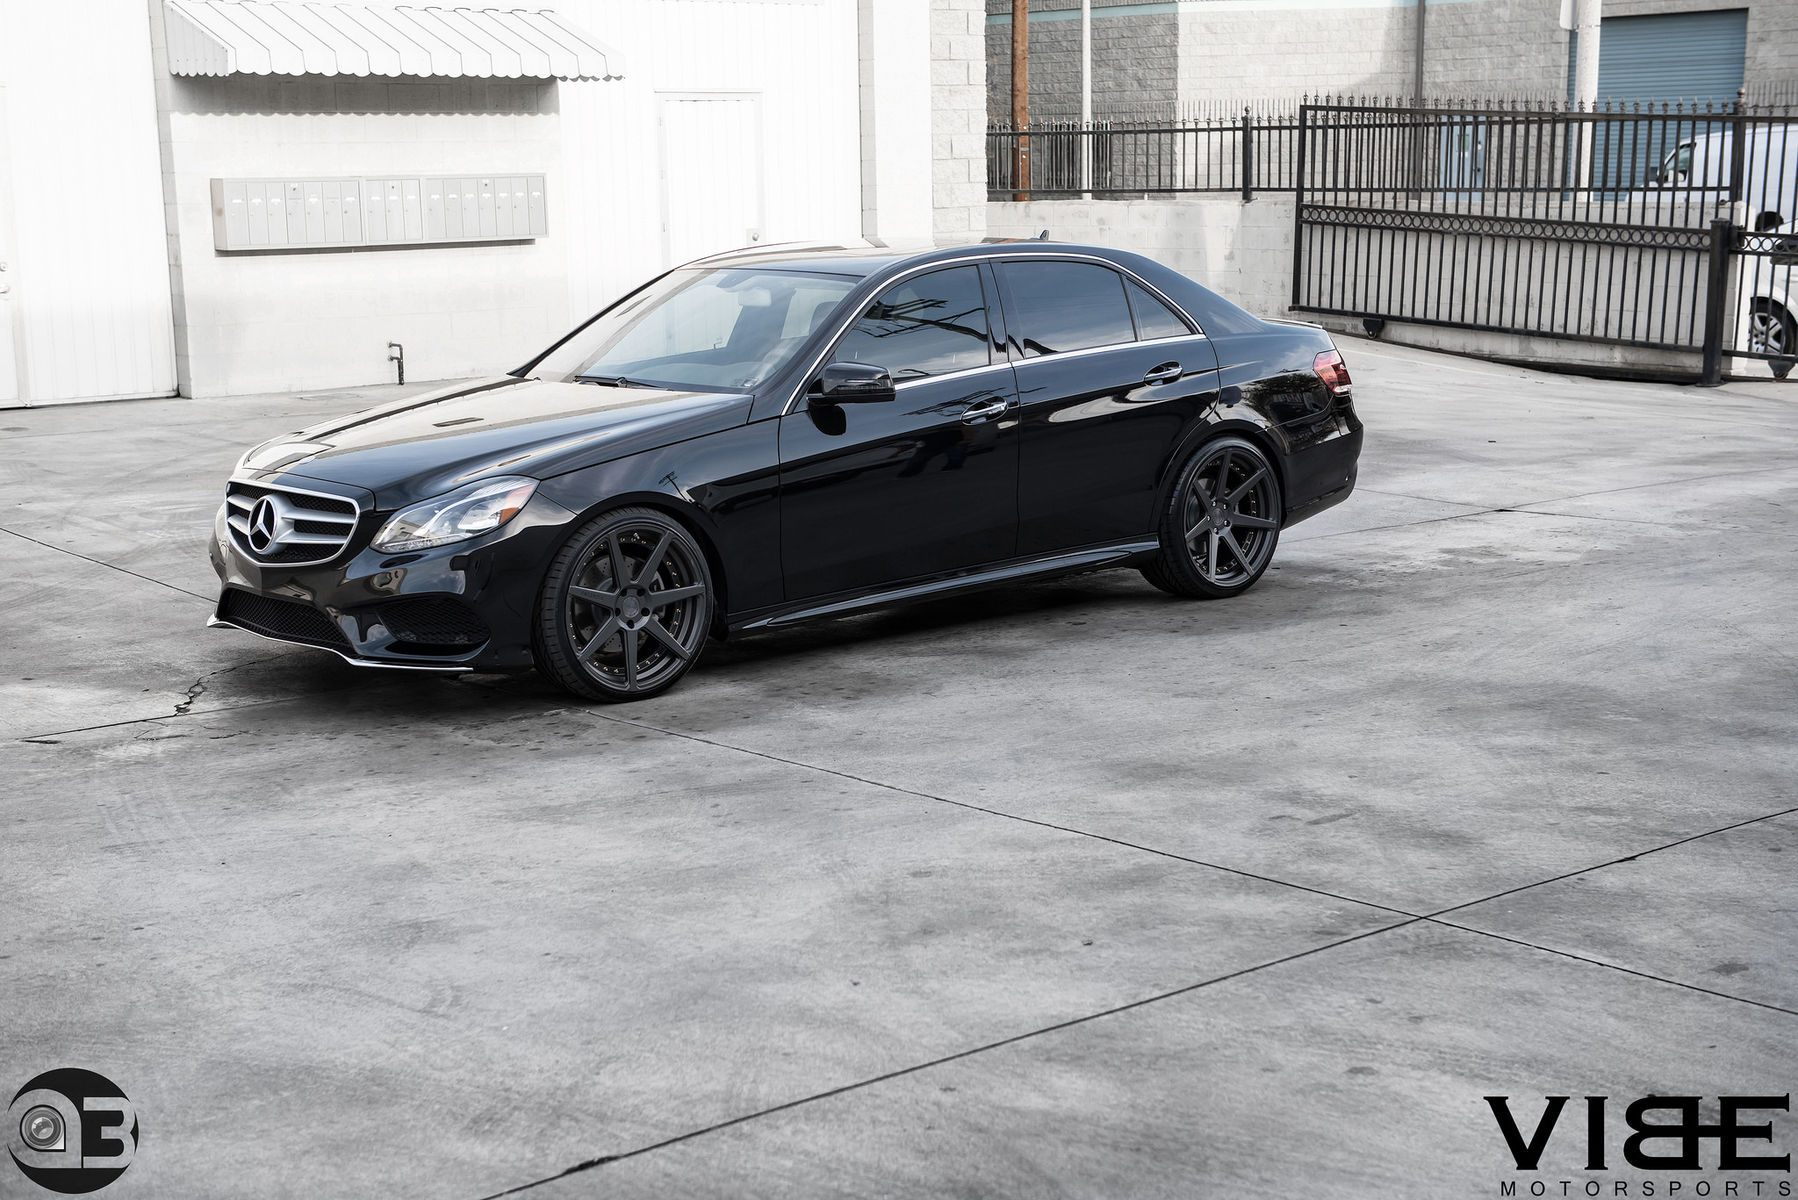 Mercedes-Benz E-Class | Mercedes E350 on Vertini Dynasty - A Project By Team Vibe